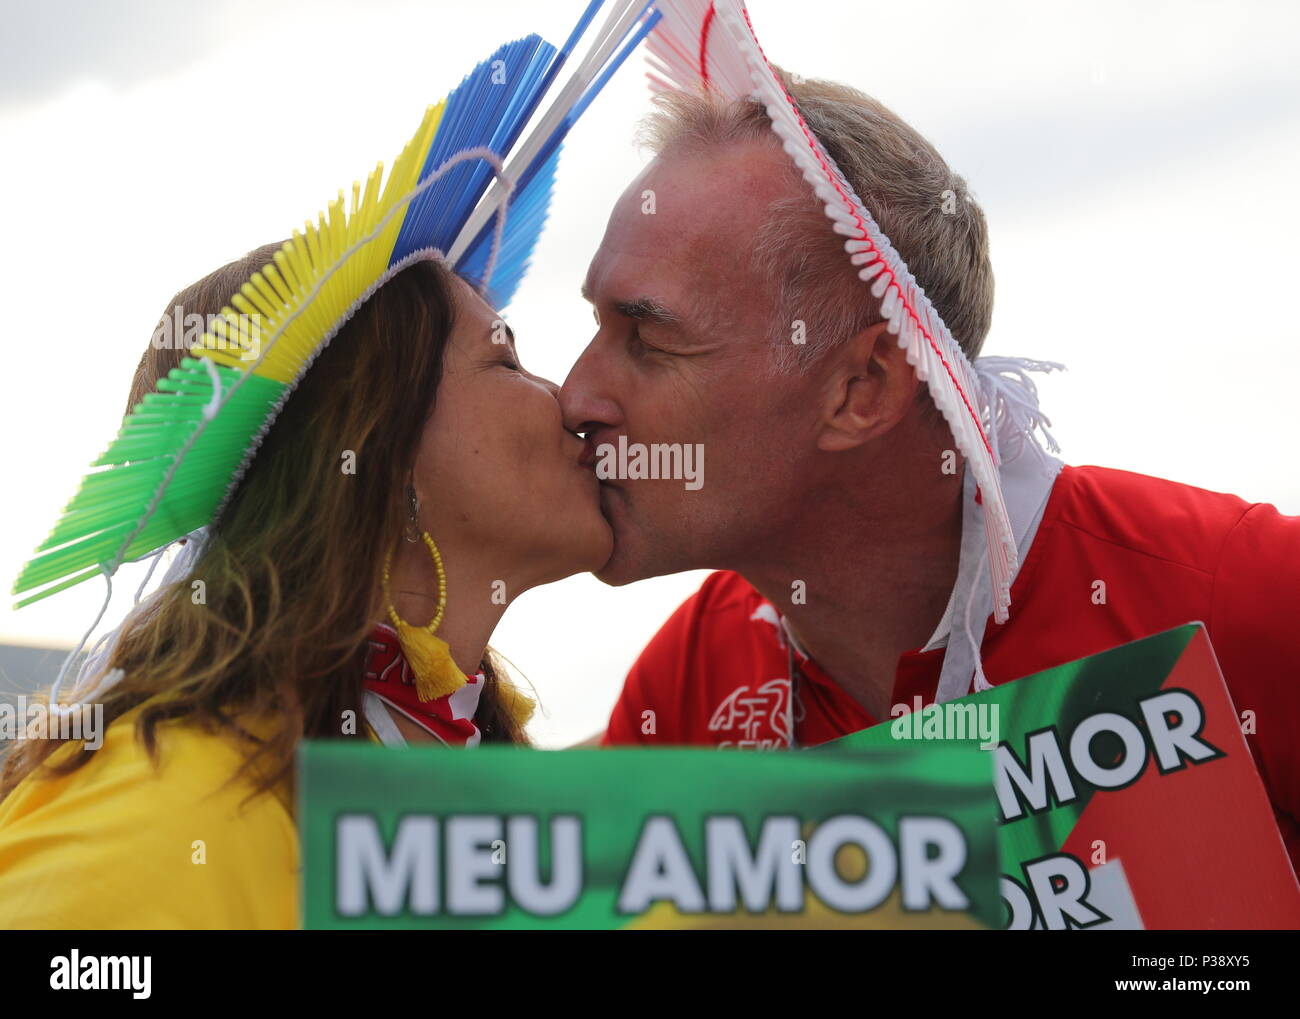 Rostov On Don, Russia. 17th June, 2018. ROSTOV-ON-DON, RUSSIA - JUNE 17, 2018: Brazilian football fans kiss before a First Stage Group E football match between Brazil and Switzerland at Rostov Arena at FIFA World Cup Russia 2018. Anton Novoderezhkin/TASS Credit: ITAR-TASS News Agency/Alamy Live News Stock Photo